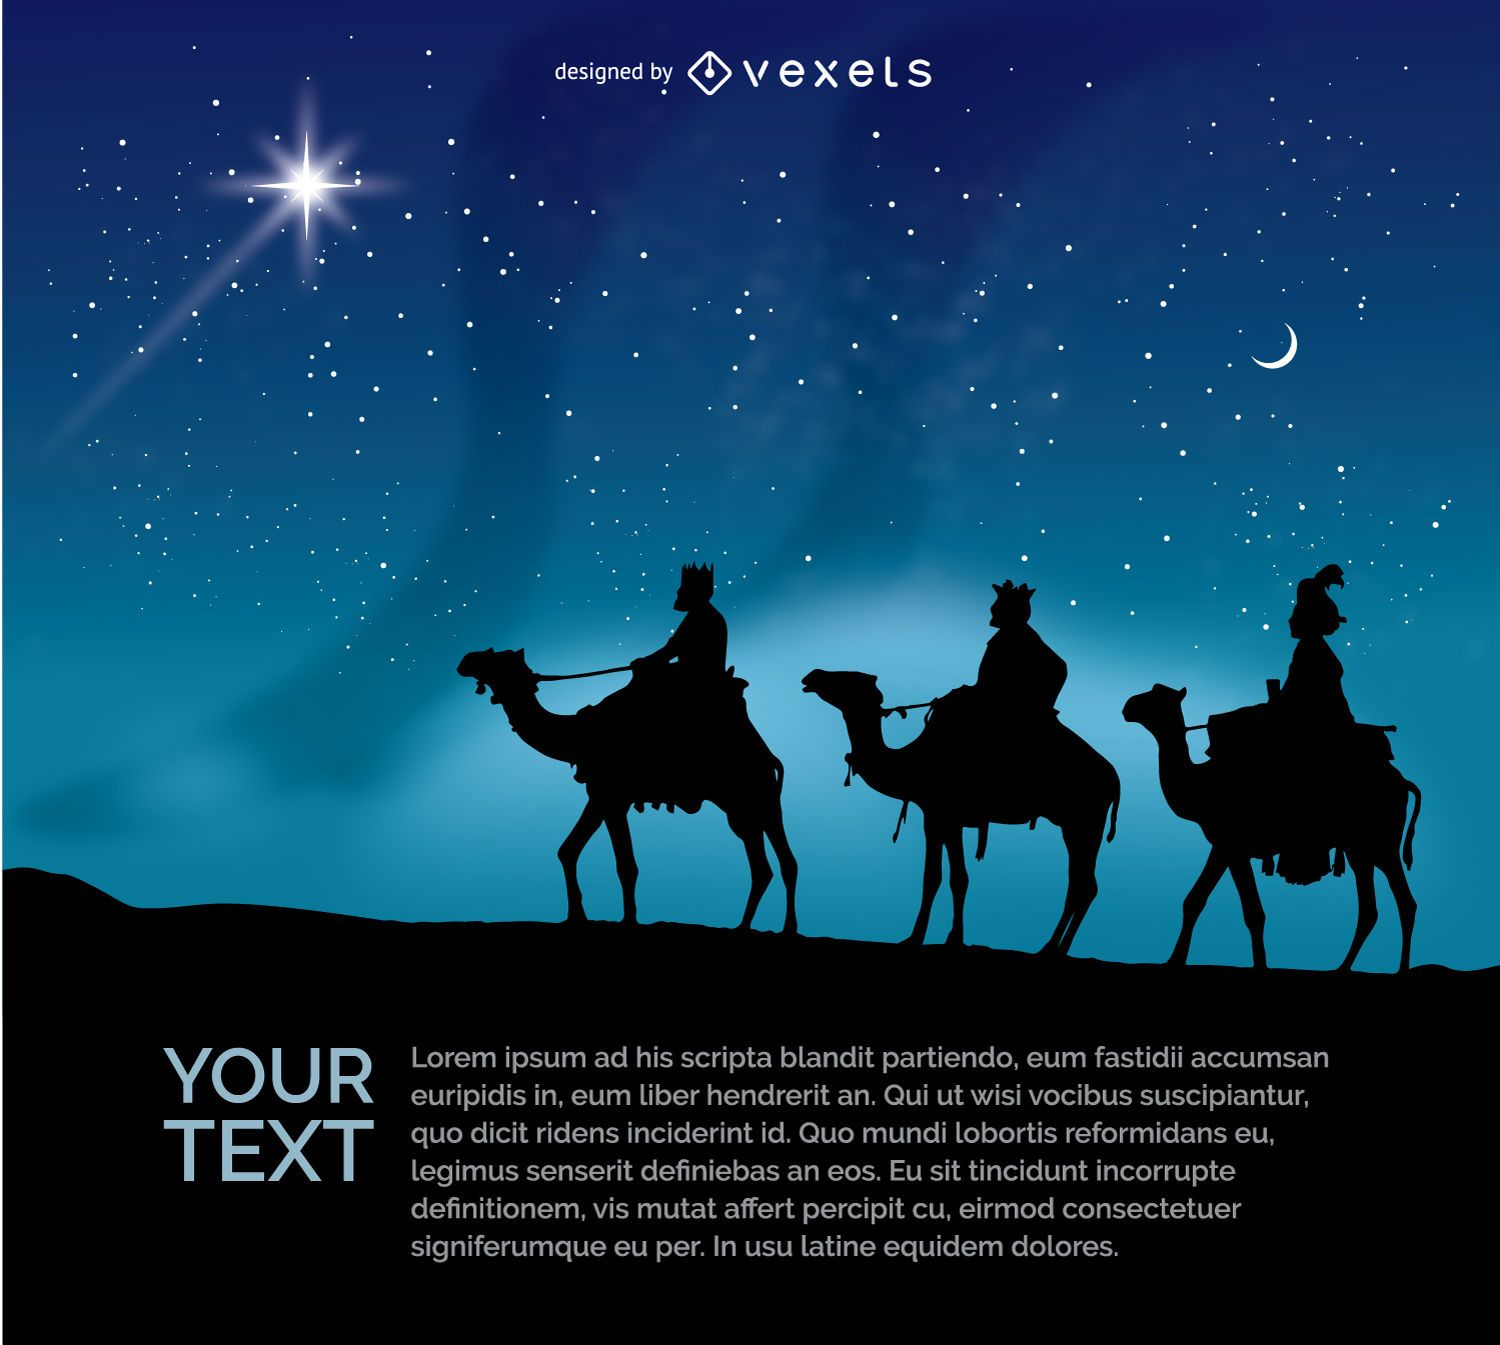 The three Wise men riding their camels at night